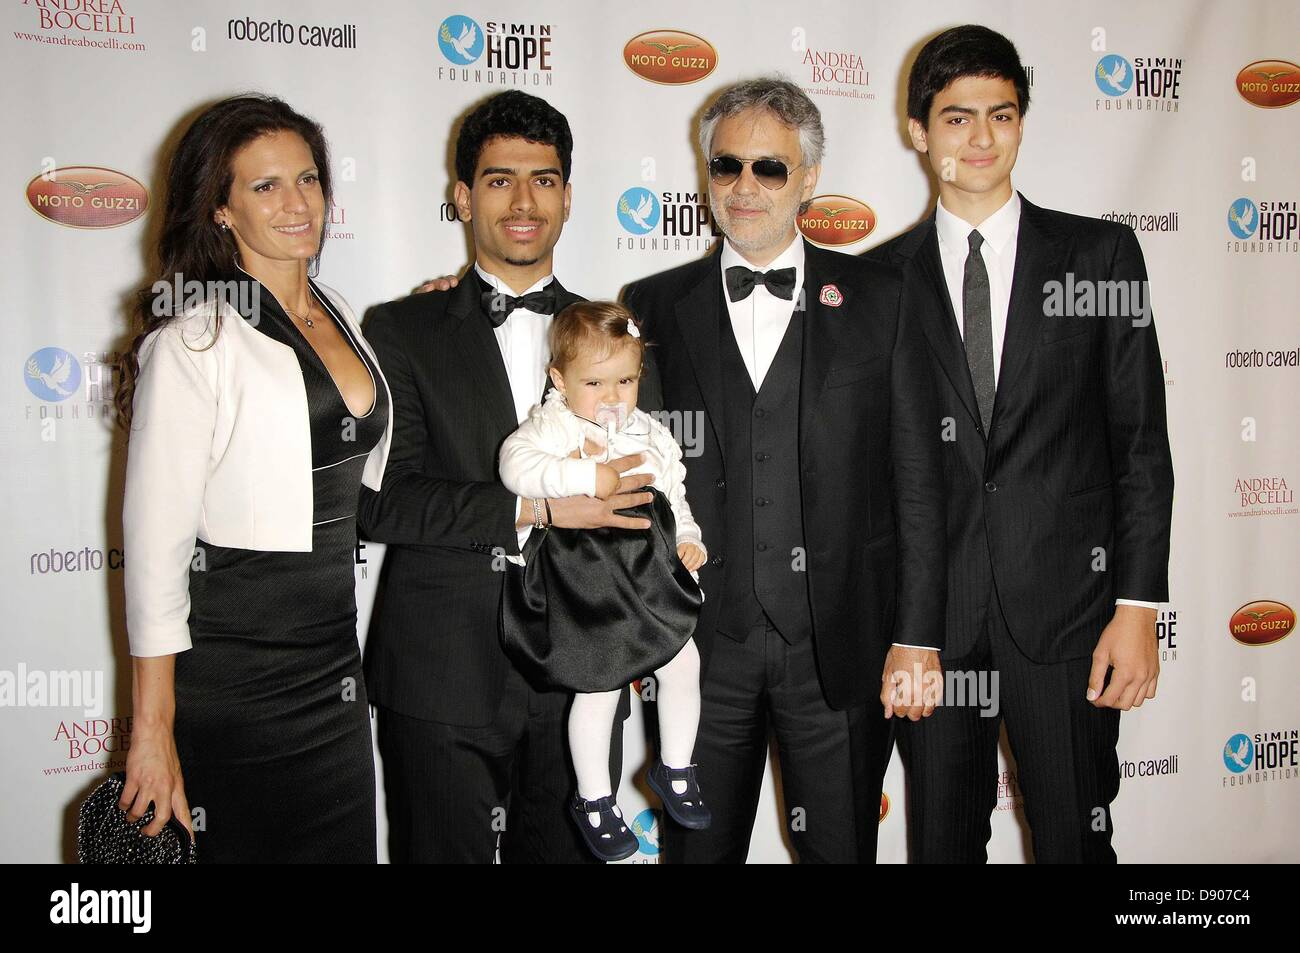 Hollywood, California, USA. 7th June 2013. A Celebration Of All Fathers' Gala Dinner With Andrea Bocelli..Jun - Stock Image